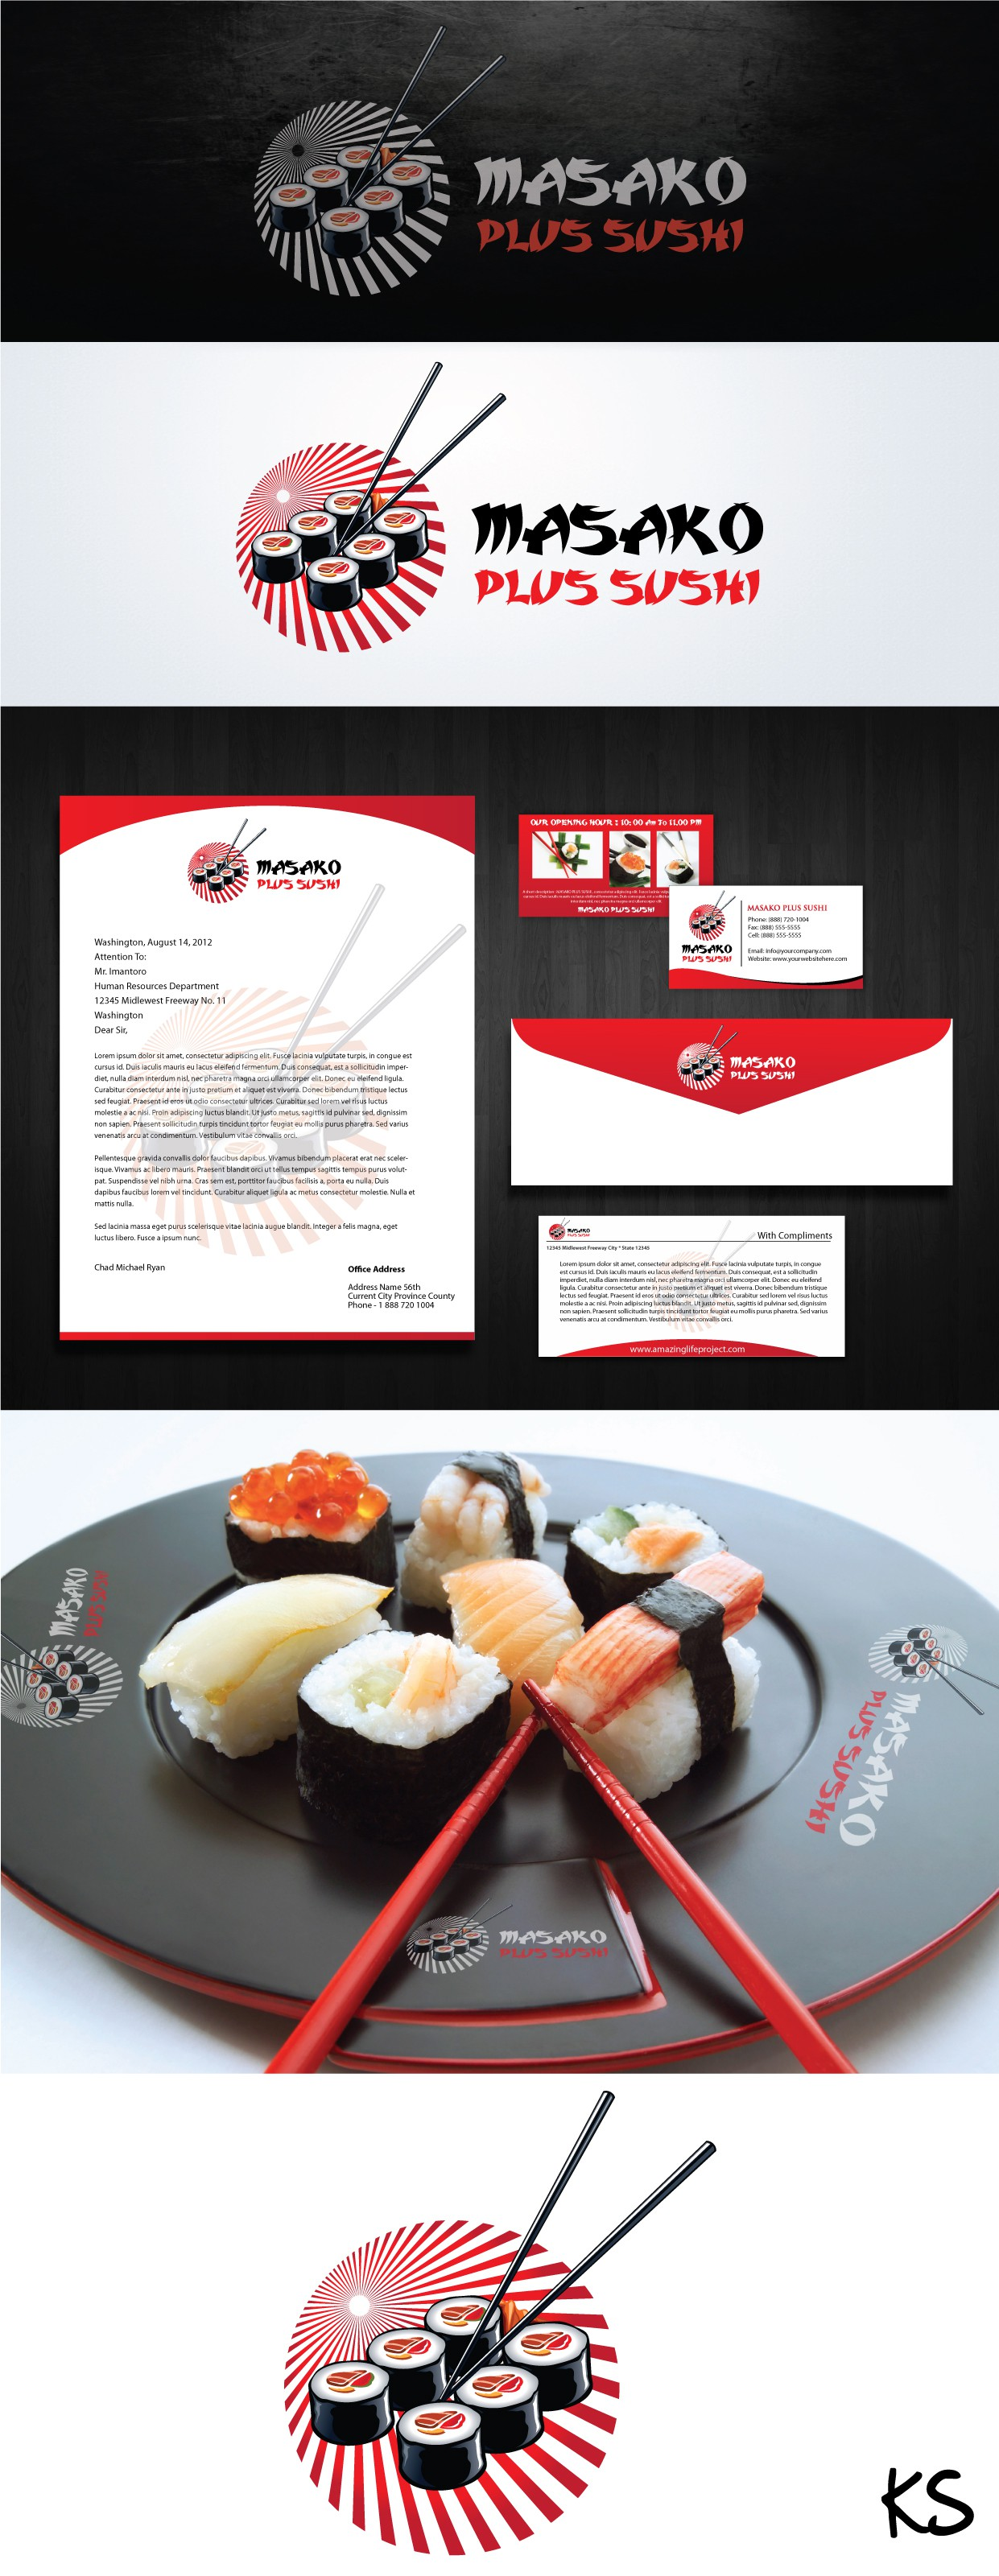 MASAKO PLUS SUSHI needs a new logo and business card